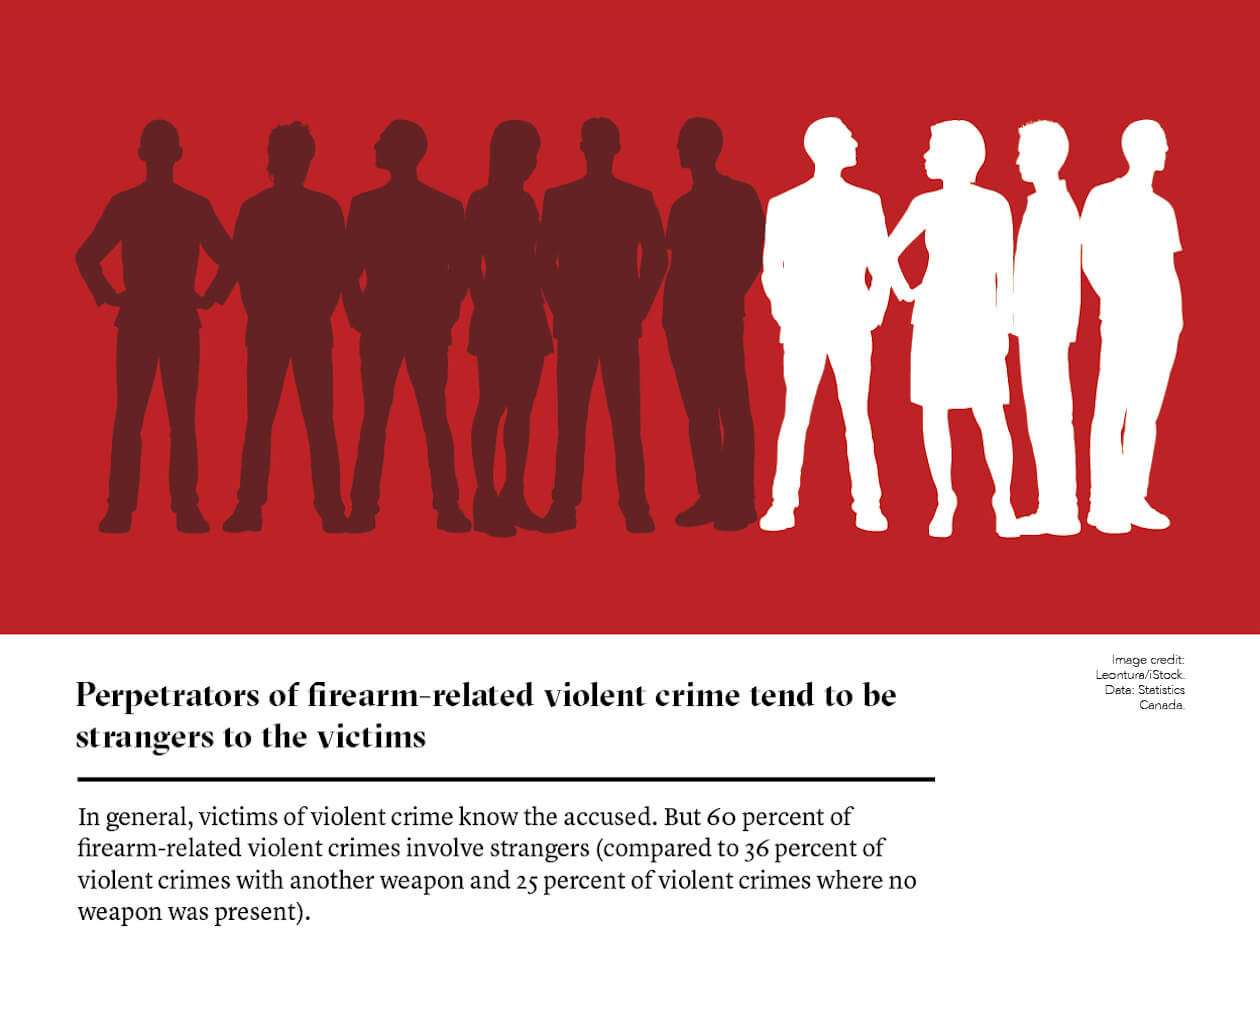 Perpetrators of firearm-related violent crime tend to be strangers to the victims